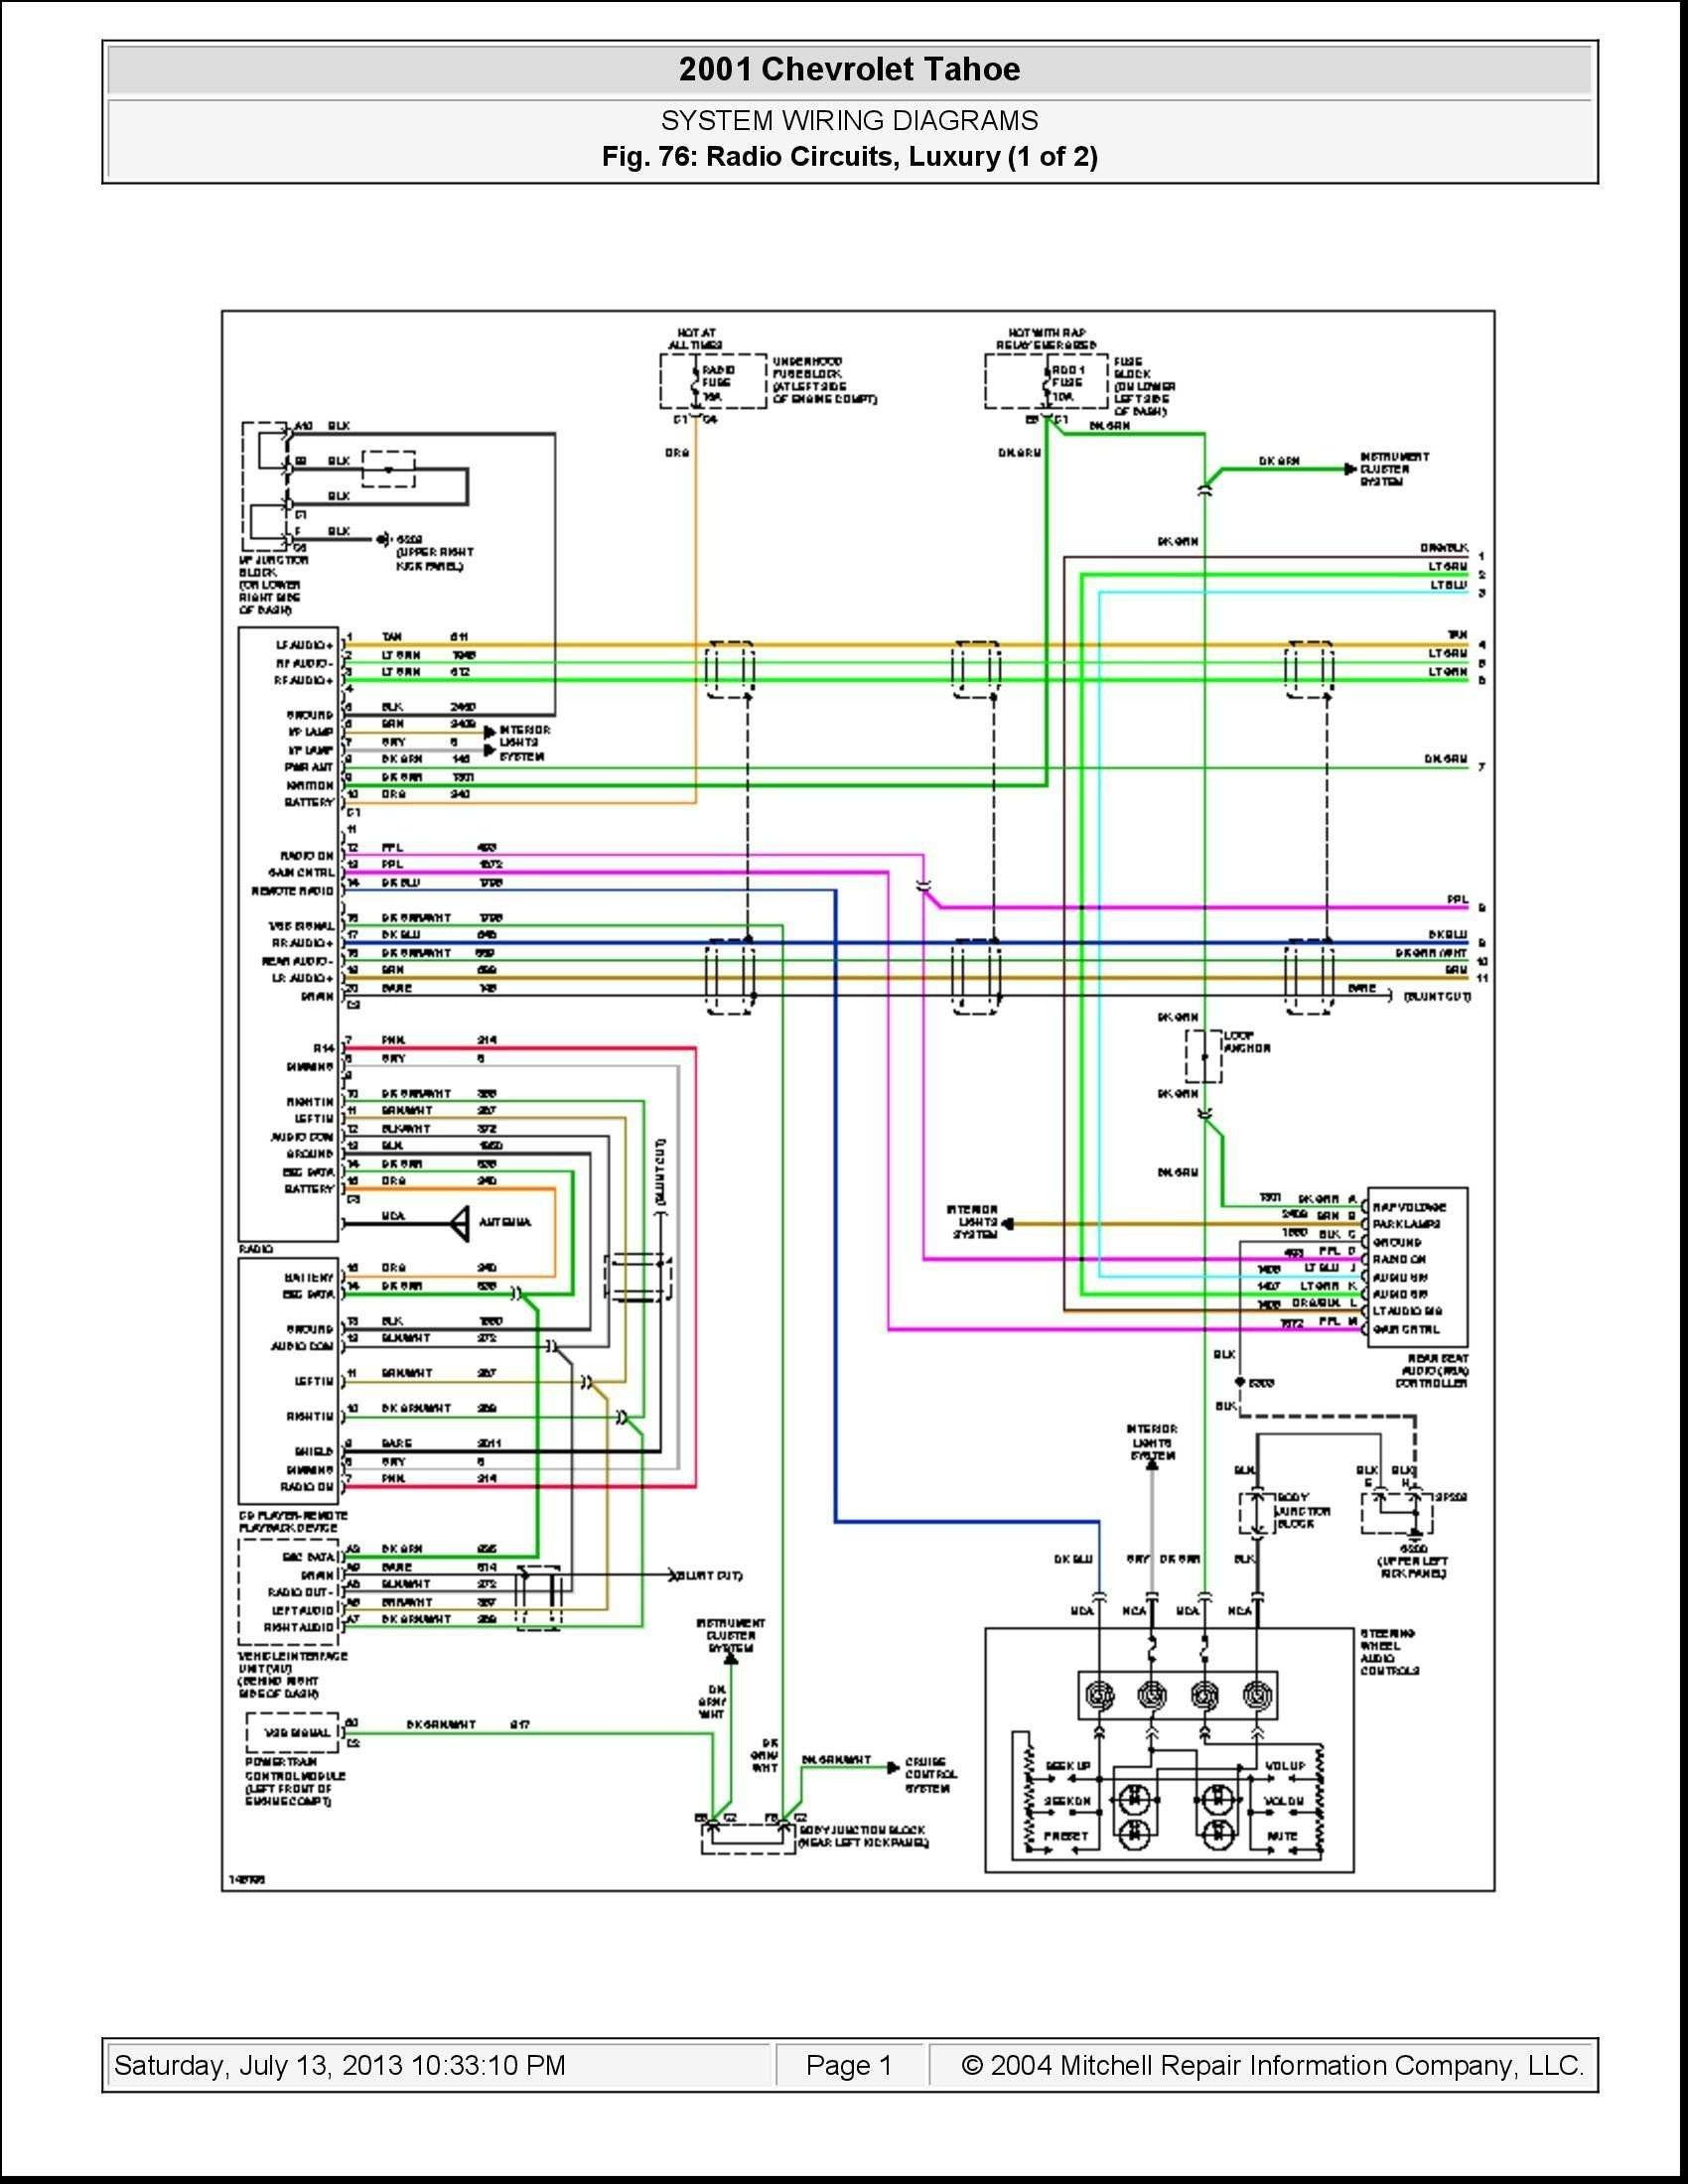 2005 Chevy Silverado Radio Wiring Diagram Best Of In 2020 2003 Chevy Silverado Chevy Silverado Chevy Impala